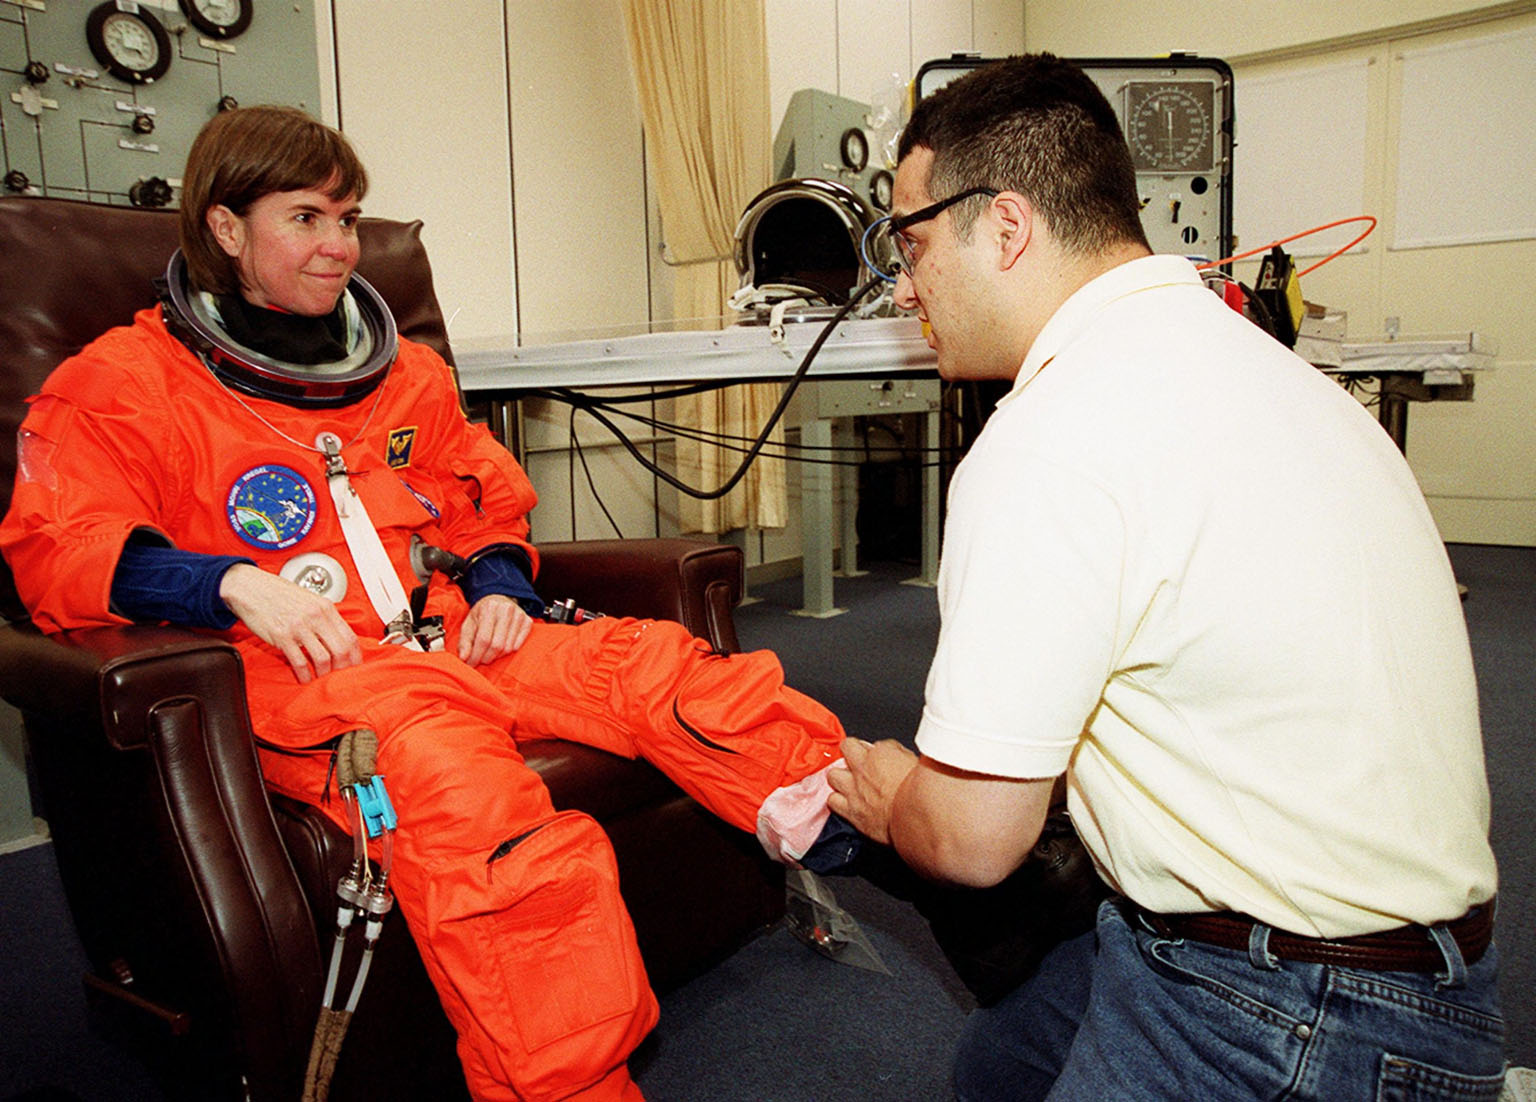 STS-99 Mission Specialist Janice Voss (Ph.D.) suits up in the Operations and Checkout Building, as part of a flight crew equipment fit check, prior to her trip to Launch Pad 39A. The crew is taking part in Terminal Countdown Demonstration Test (TCDT) activities that provide the crew with simulated countdown exercises, emergency egress training, and opportunities to inspect the mission payloads in the orbiter's payload bay. STS-99 is the Shuttle Radar Topography Mission, which will chart a new course, using two antennae and a 200-foot-long section of space station-derived mast protruding from the payload bay to produce unrivaled 3-D images of the Earth's surface. The result of the Shuttle Radar Topography Mission could be close to 1 trillion measurements of the Earth's topography. Besides contributing to the production of better maps, these measurements could lead to improved water drainage modeling, more realistic flight simulators, better locations for cell phone towers, and enhanced navigation safety. Launch of Endeavour on the 11-day mission is scheduled for Jan. 31 at 12:47 p.m. EST